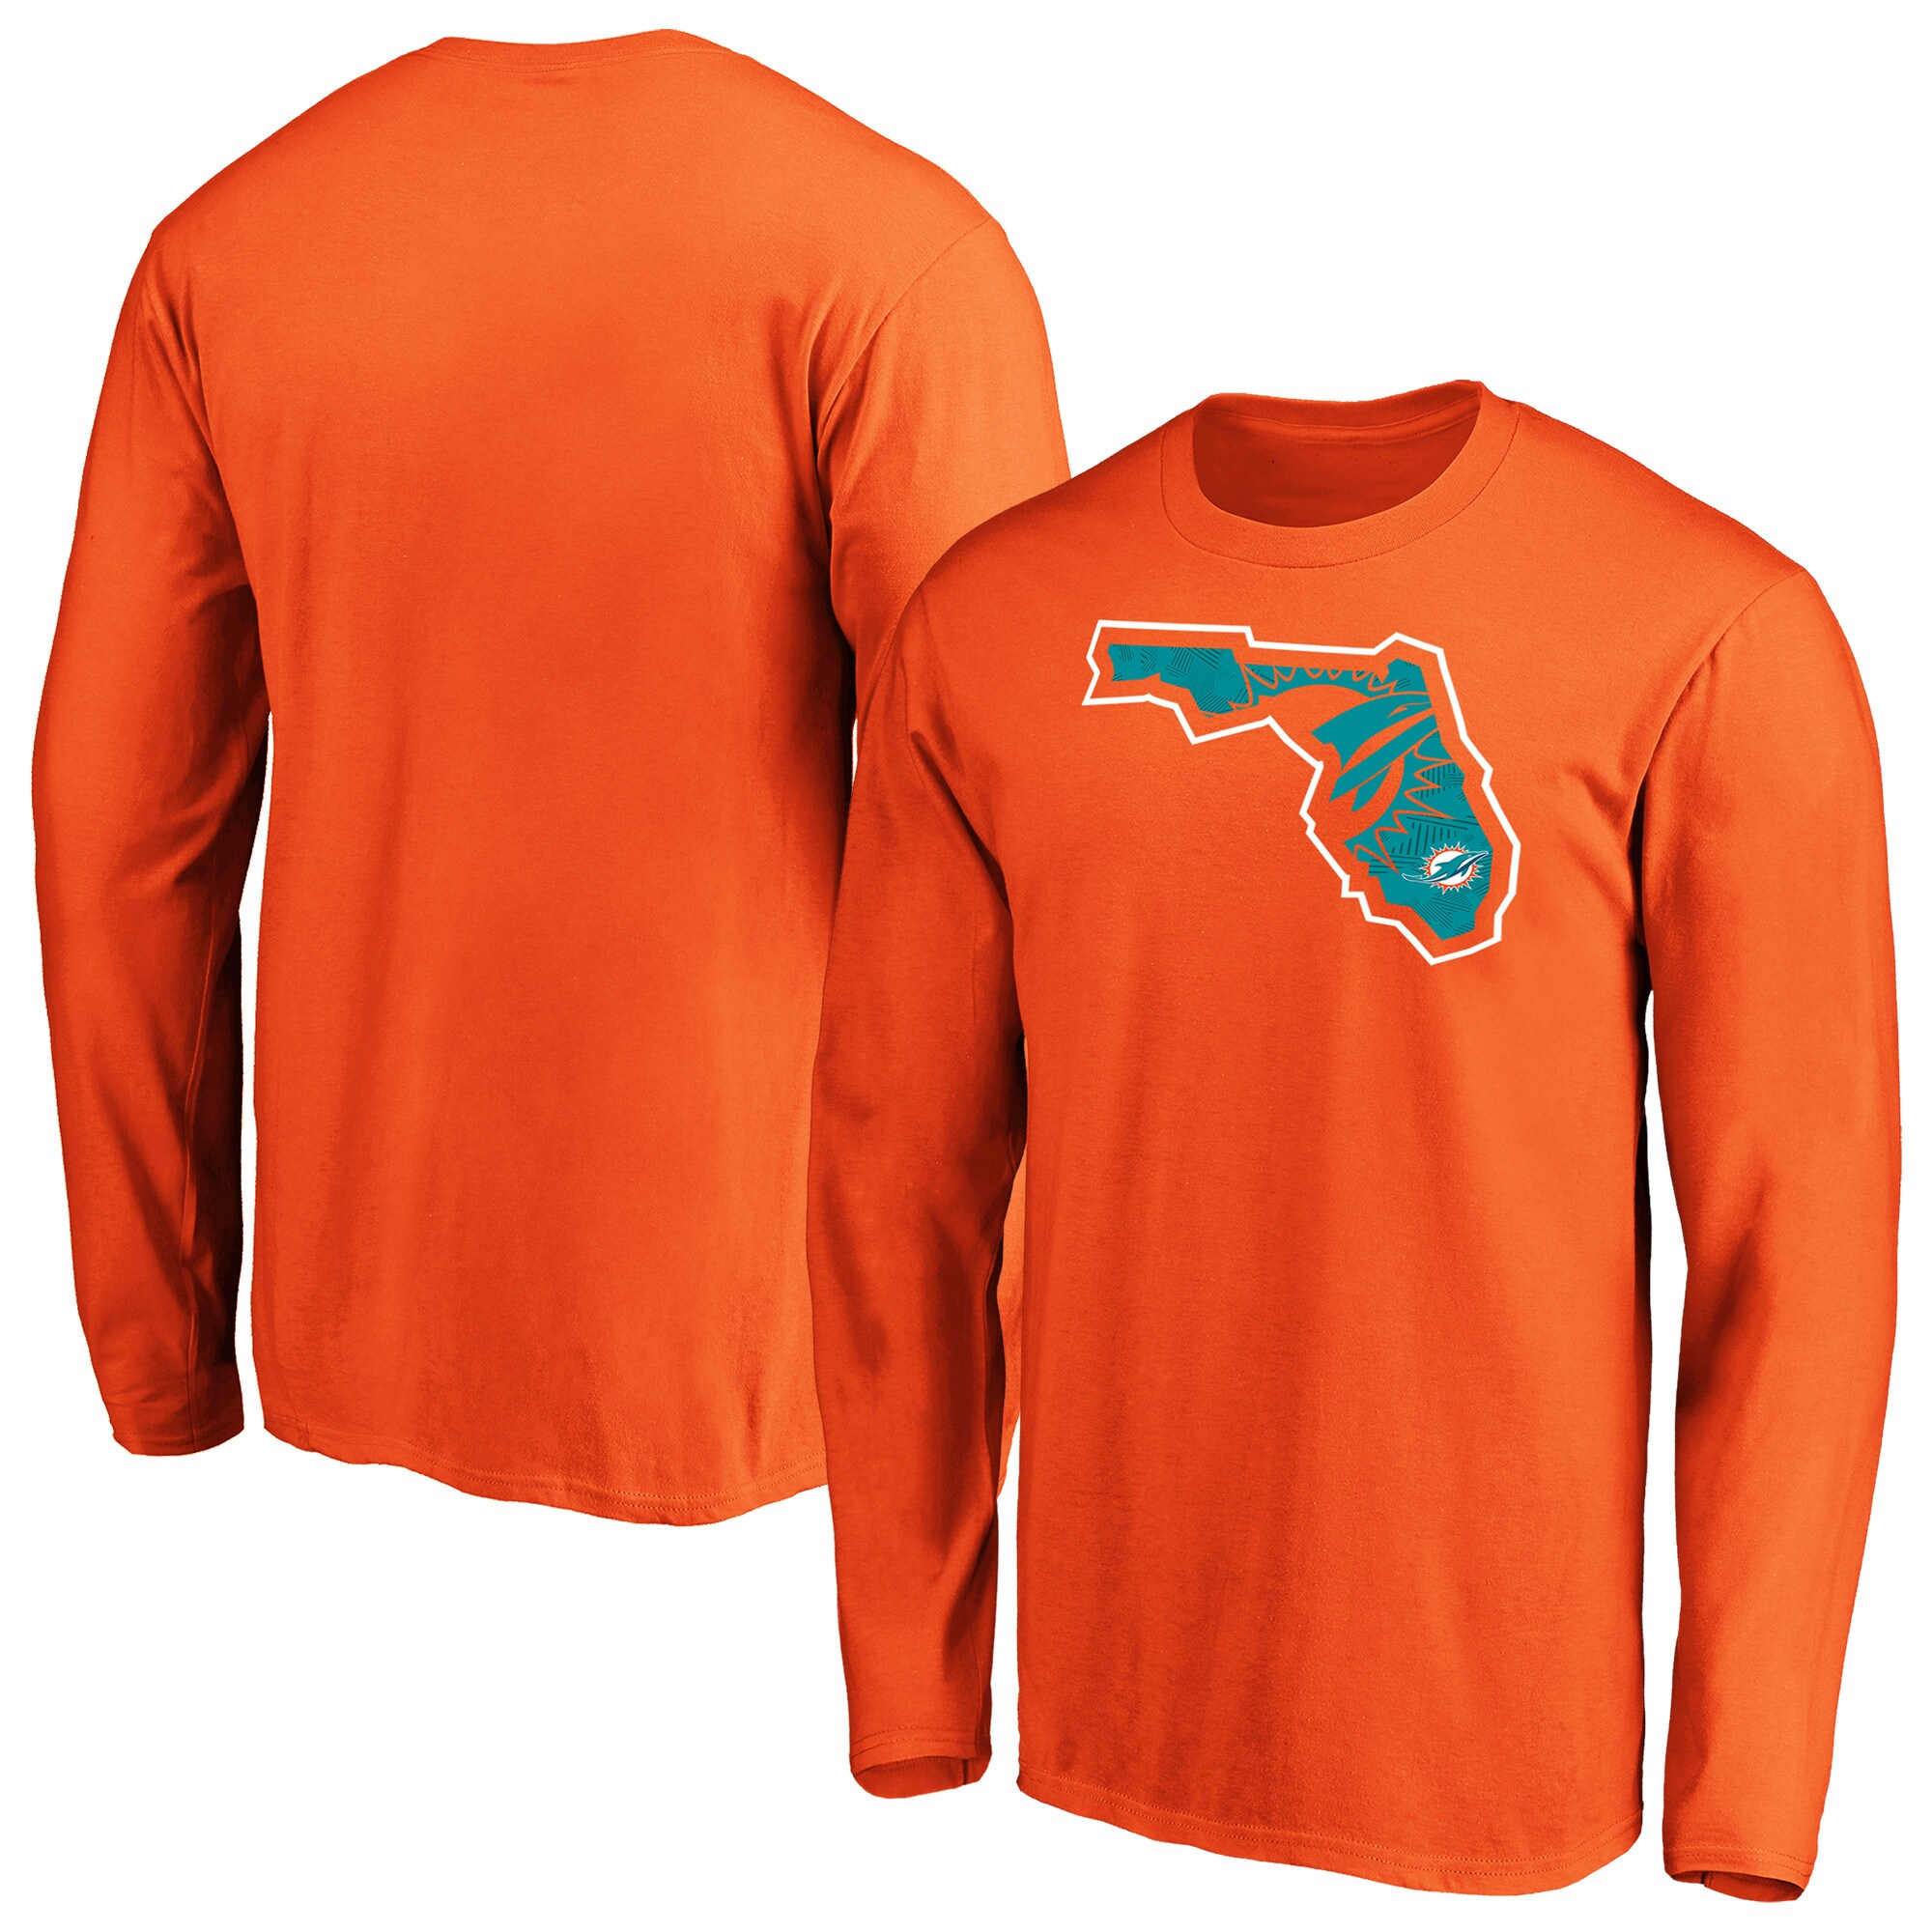 Miami Dolphins NFL Pro Line by Fanatics Branded Iconic State Pride Long Sleeve T-Shirt - Orange